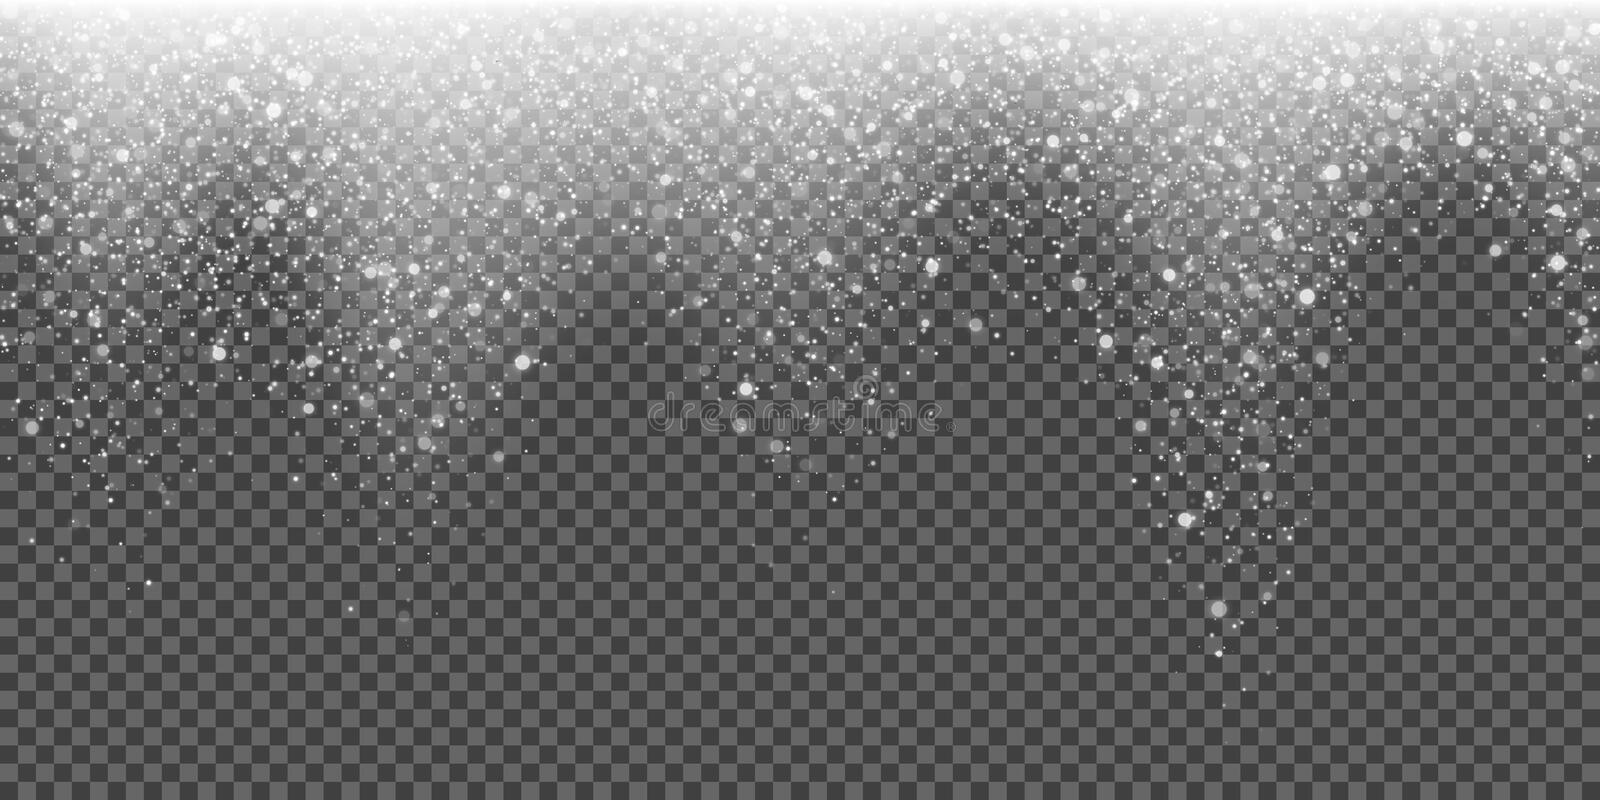 Snow falling glittering snowflake light vector winter glitter particles Christmas sparkling background stock illustration